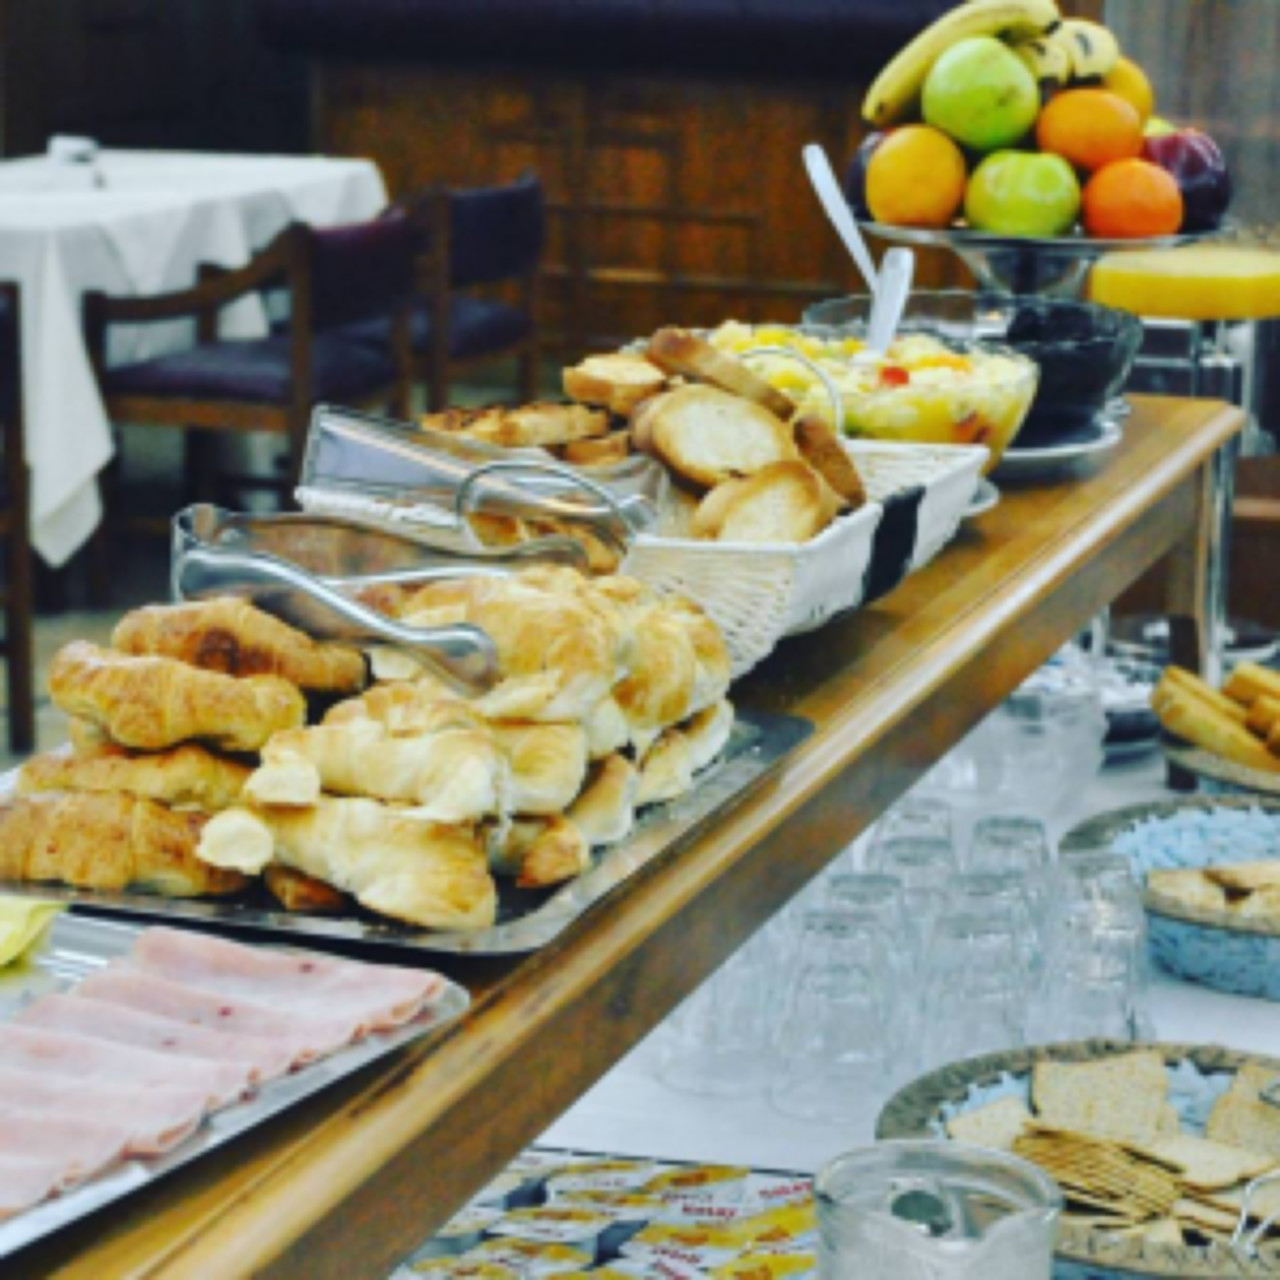 confectionery buffet breakfast Hotel Libertador Trelew Chubut